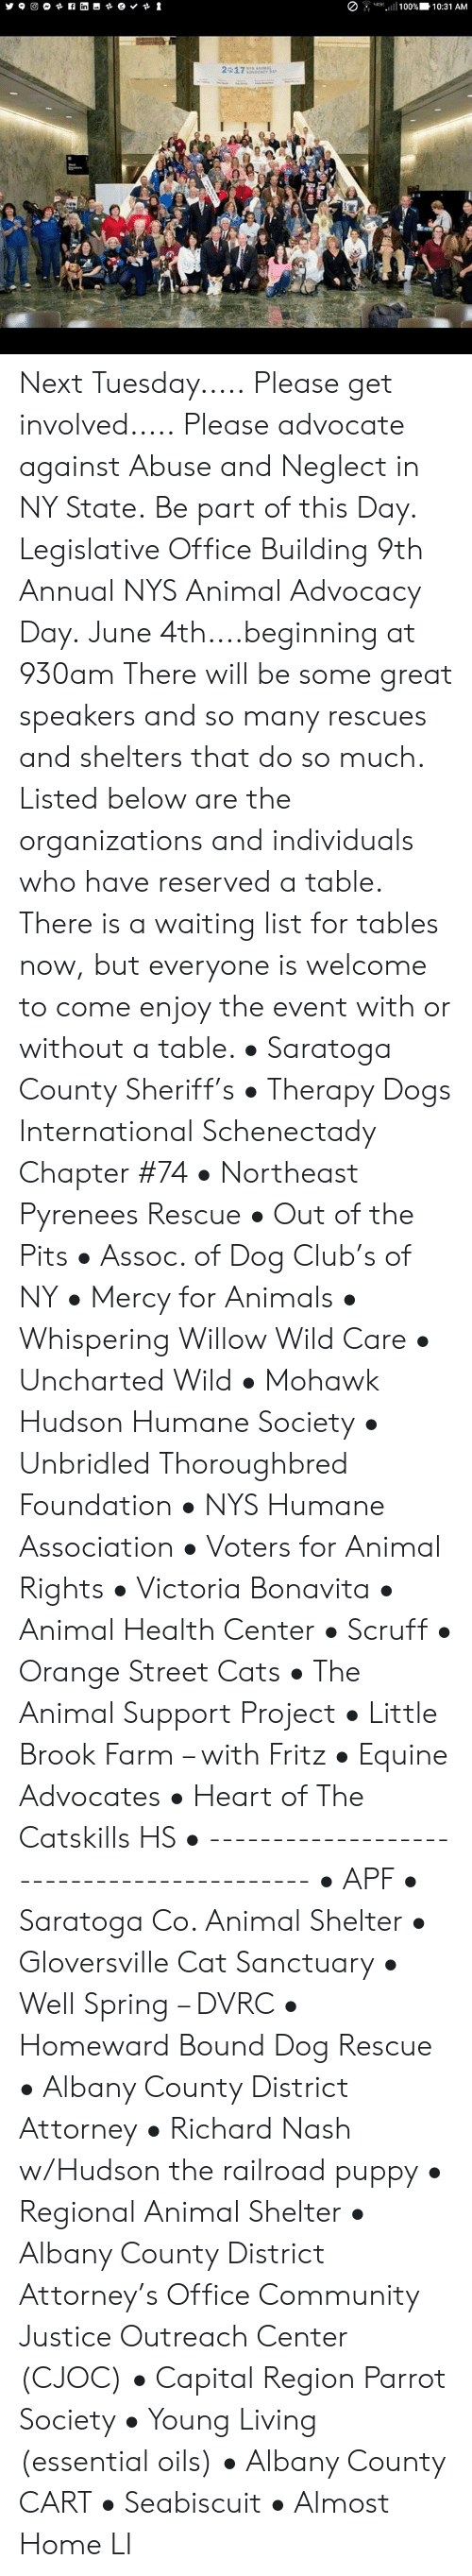 Animals, Cats, and Club: , .G.ull 100%). 10:31 AM  2217 Next Tuesday.....  Please get involved..... Please advocate against Abuse and Neglect in NY State.  Be part of this Day. Legislative Office Building  9th Annual NYS Animal Advocacy Day. June 4th....beginning at 930am  There will be some great speakers and so many rescues and shelters that do so much.  Listed below are the organizations and individuals who have reserved a table. There is a waiting list for tables now, but everyone is welcome to come enjoy the event with or without a table.    • Saratoga County Sheriff's • Therapy Dogs International Schenectady Chapter #74 • Northeast Pyrenees Rescue • Out of the Pits • Assoc. of Dog Club's of NY • Mercy for Animals • Whispering Willow Wild Care • Uncharted Wild • Mohawk Hudson Humane Society • Unbridled Thoroughbred Foundation • NYS Humane Association • Voters for Animal Rights • Victoria Bonavita • Animal Health Center • Scruff • Orange Street Cats • The Animal Support Project • Little Brook Farm – with Fritz • Equine Advocates • Heart of The Catskills HS • ------------------------------------------ • APF • Saratoga Co. Animal Shelter • Gloversville Cat Sanctuary • Well Spring – DVRC • Homeward Bound Dog Rescue • Albany County District Attorney • Richard Nash w/Hudson the railroad puppy • Regional Animal Shelter • Albany County District Attorney's Office Community Justice Outreach Center (CJOC) • Capital Region Parrot Society  • Young Living (essential oils)  • Albany County CART • Seabiscuit • Almost Home LI